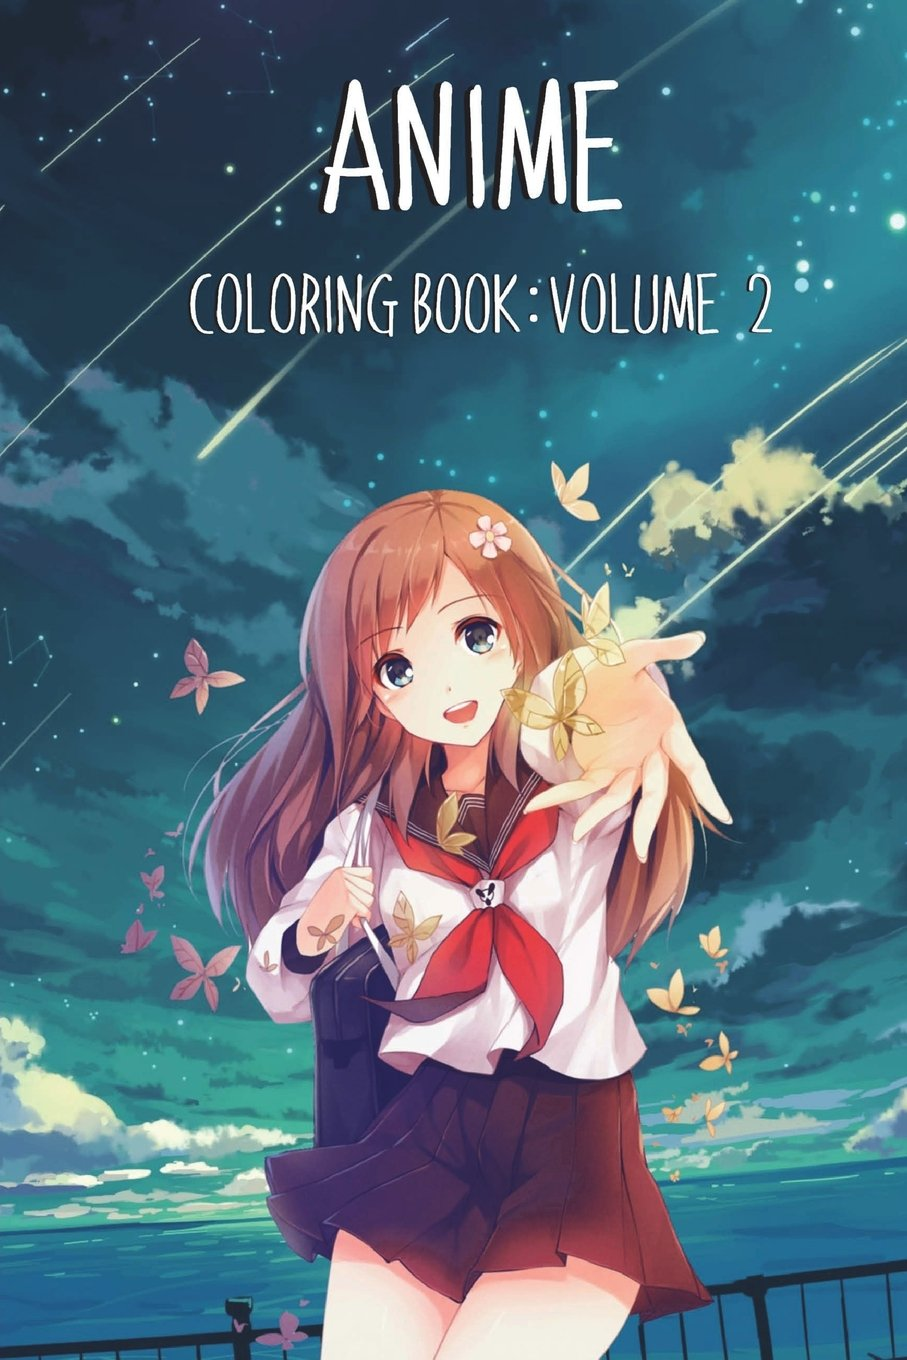 - Amazon.com: Anime Coloring Book: Volume 2 (9781722966171